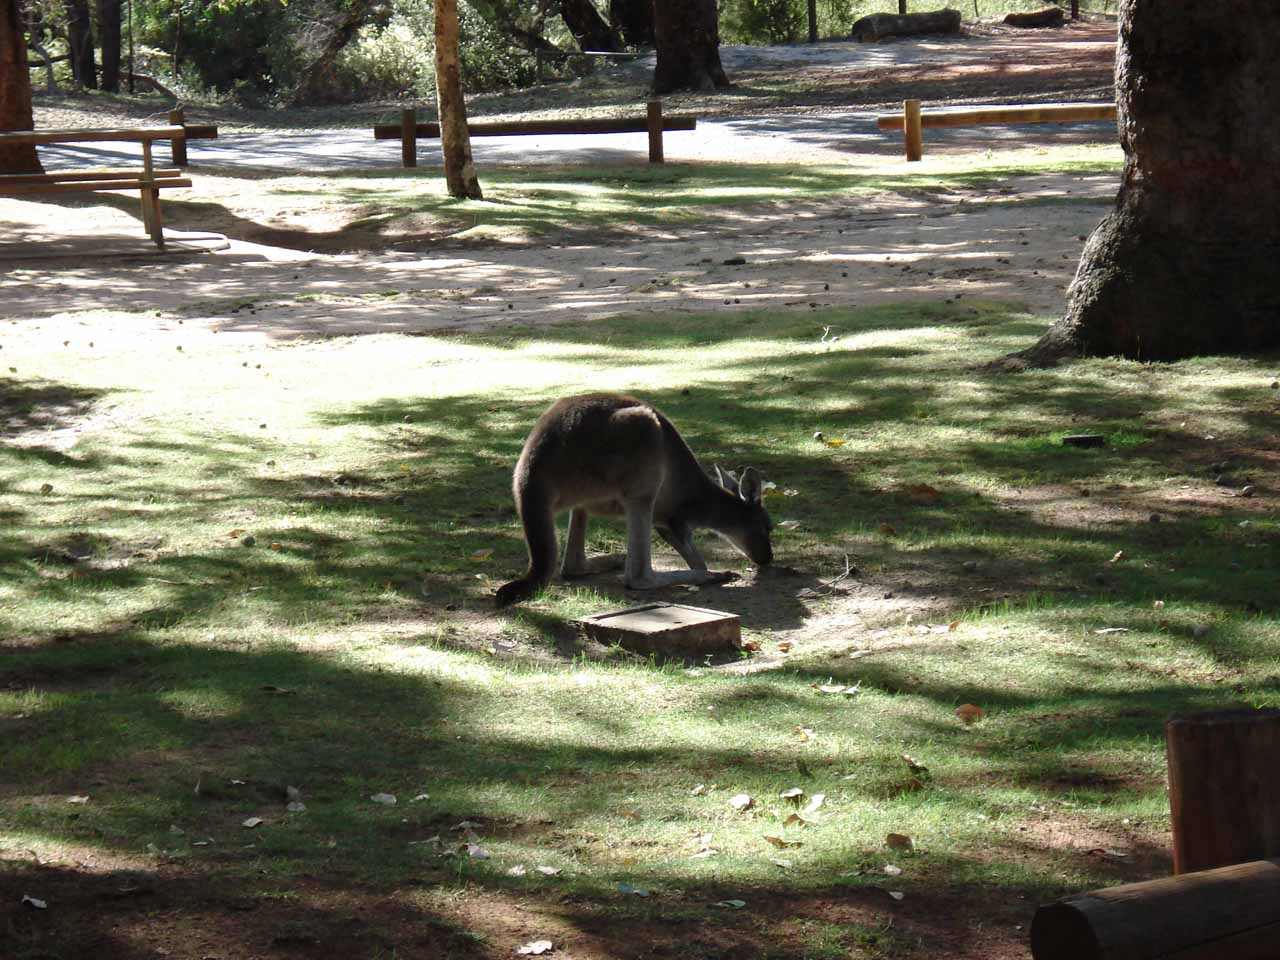 A kangaroo grazing at the picnic area by the car park for Serpentine National Park